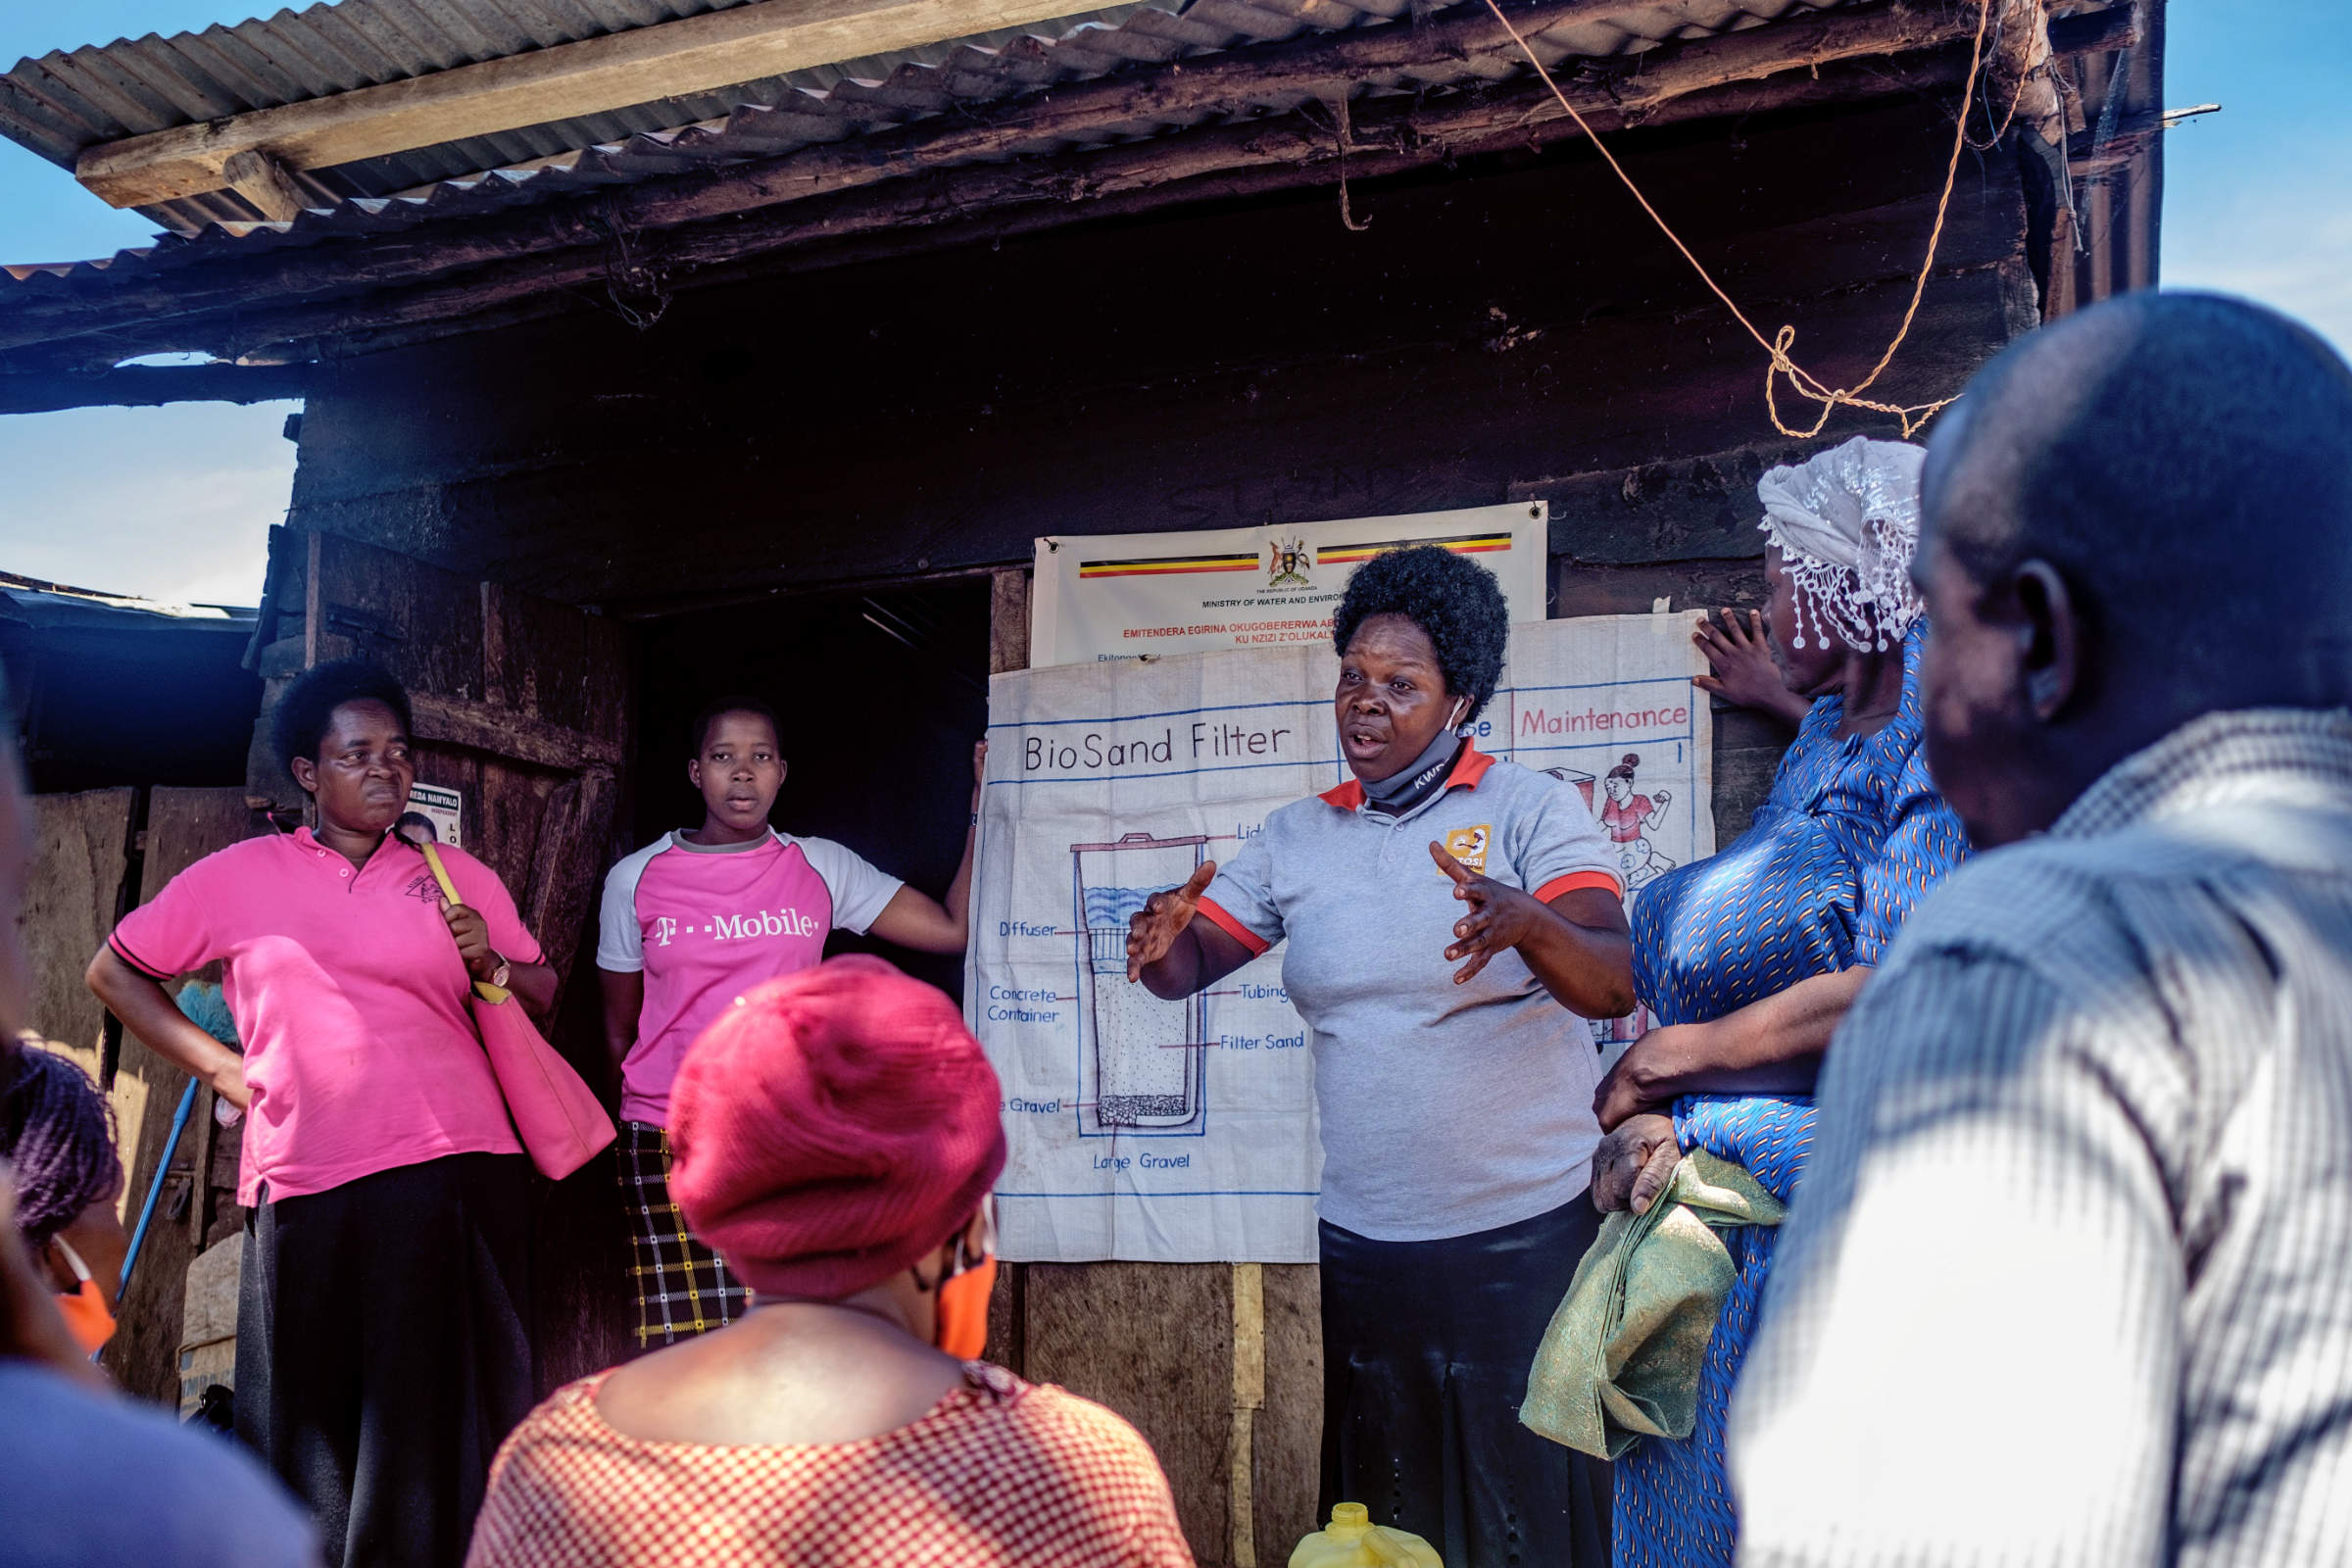 A woman explains the function of bio sand filters to a group of people with diagrams